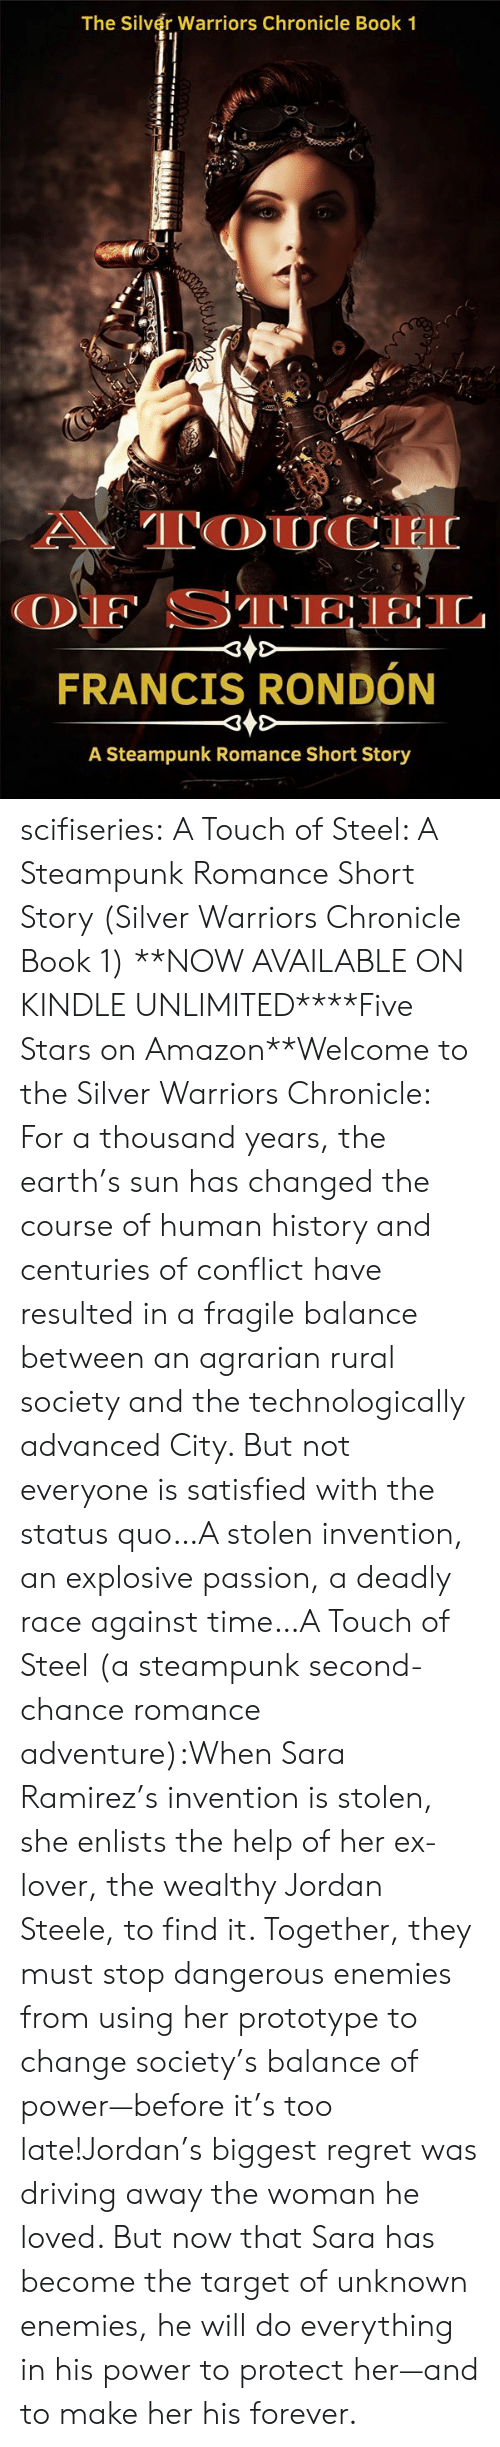 Silver: The Silver Warriors Chronicle Book 1  A TOUCH  OF STEEL  FRANCIS RONDÓN  A Steampunk Romance Short Story scifiseries:   A Touch of Steel: A Steampunk Romance Short Story (Silver Warriors Chronicle Book 1)   **NOW AVAILABLE ON KINDLE UNLIMITED****Five Stars on Amazon**Welcome to the Silver Warriors Chronicle: For a thousand years, the earth's sun has changed the course of human history and centuries of conflict have resulted in a fragile balance between an agrarian rural society and the technologically advanced City. But not everyone is satisfied with the status quo…A stolen invention, an explosive passion, a deadly race against time…A Touch of Steel (a steampunk second-chance romance adventure):When Sara Ramirez's invention is stolen, she enlists the help of her ex-lover, the wealthy Jordan Steele, to find it. Together, they must stop dangerous enemies from using her prototype to change society's balance of power—before it's too late!Jordan's biggest regret was driving away the woman he loved. But now that Sara has become the target of unknown enemies, he will do everything in his power to protect her—and to make her his forever.